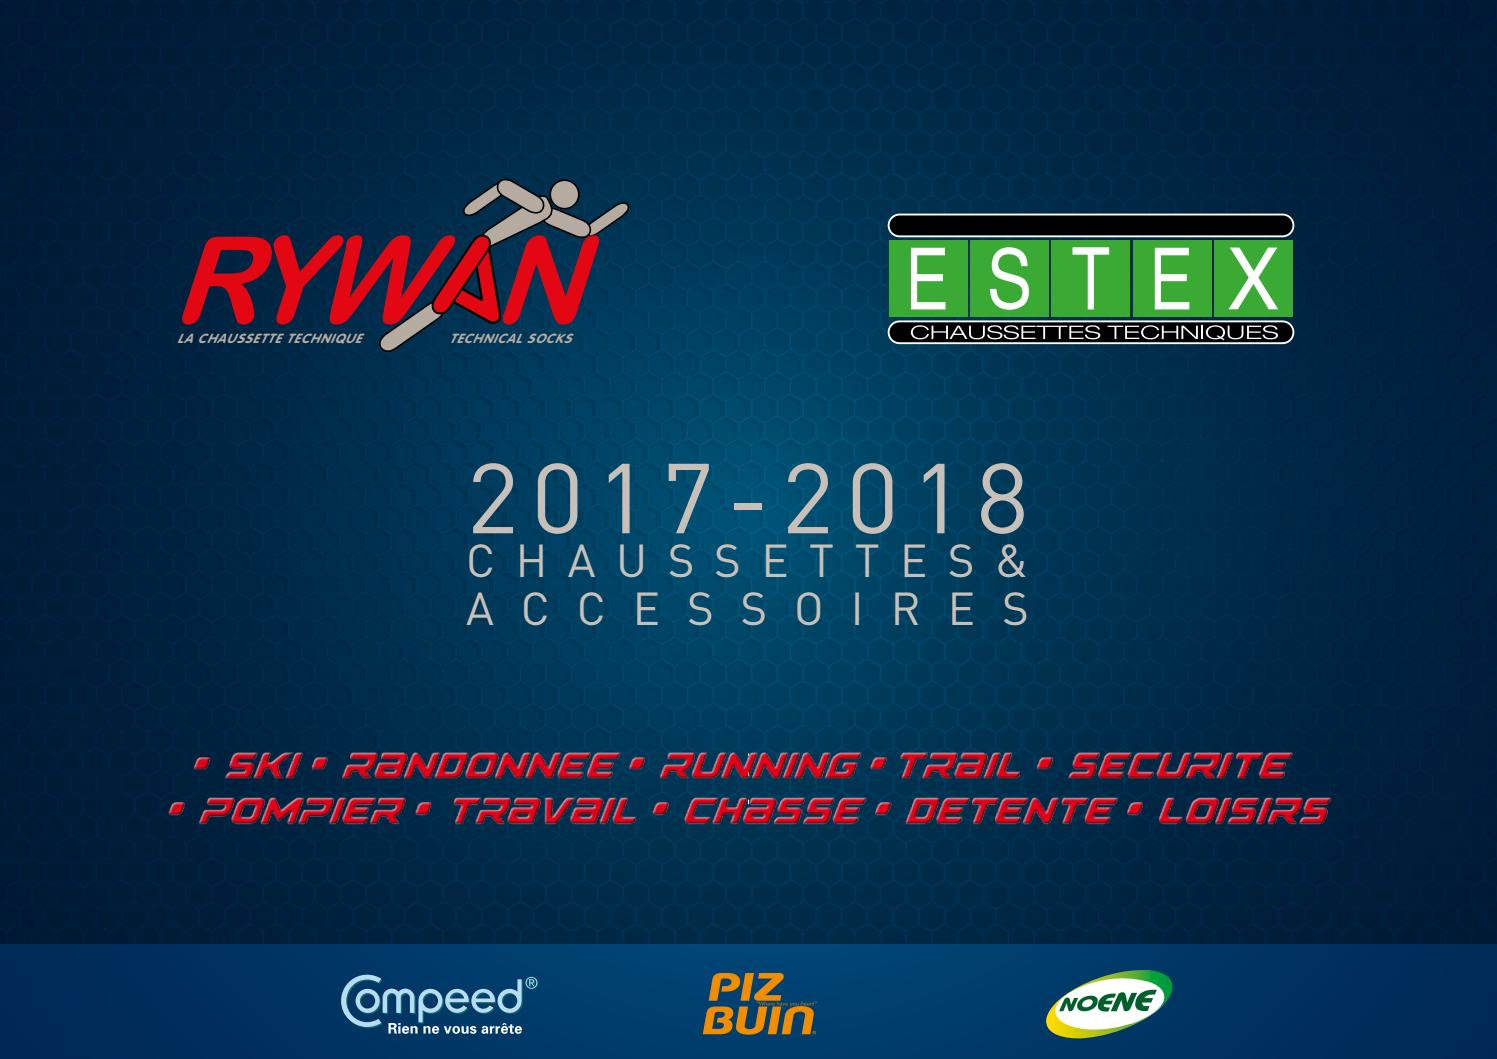 355f257b747 Catalogue RYWAN ESTEX 2017 2018 FRANCAIS by Rywan Talux - issuu